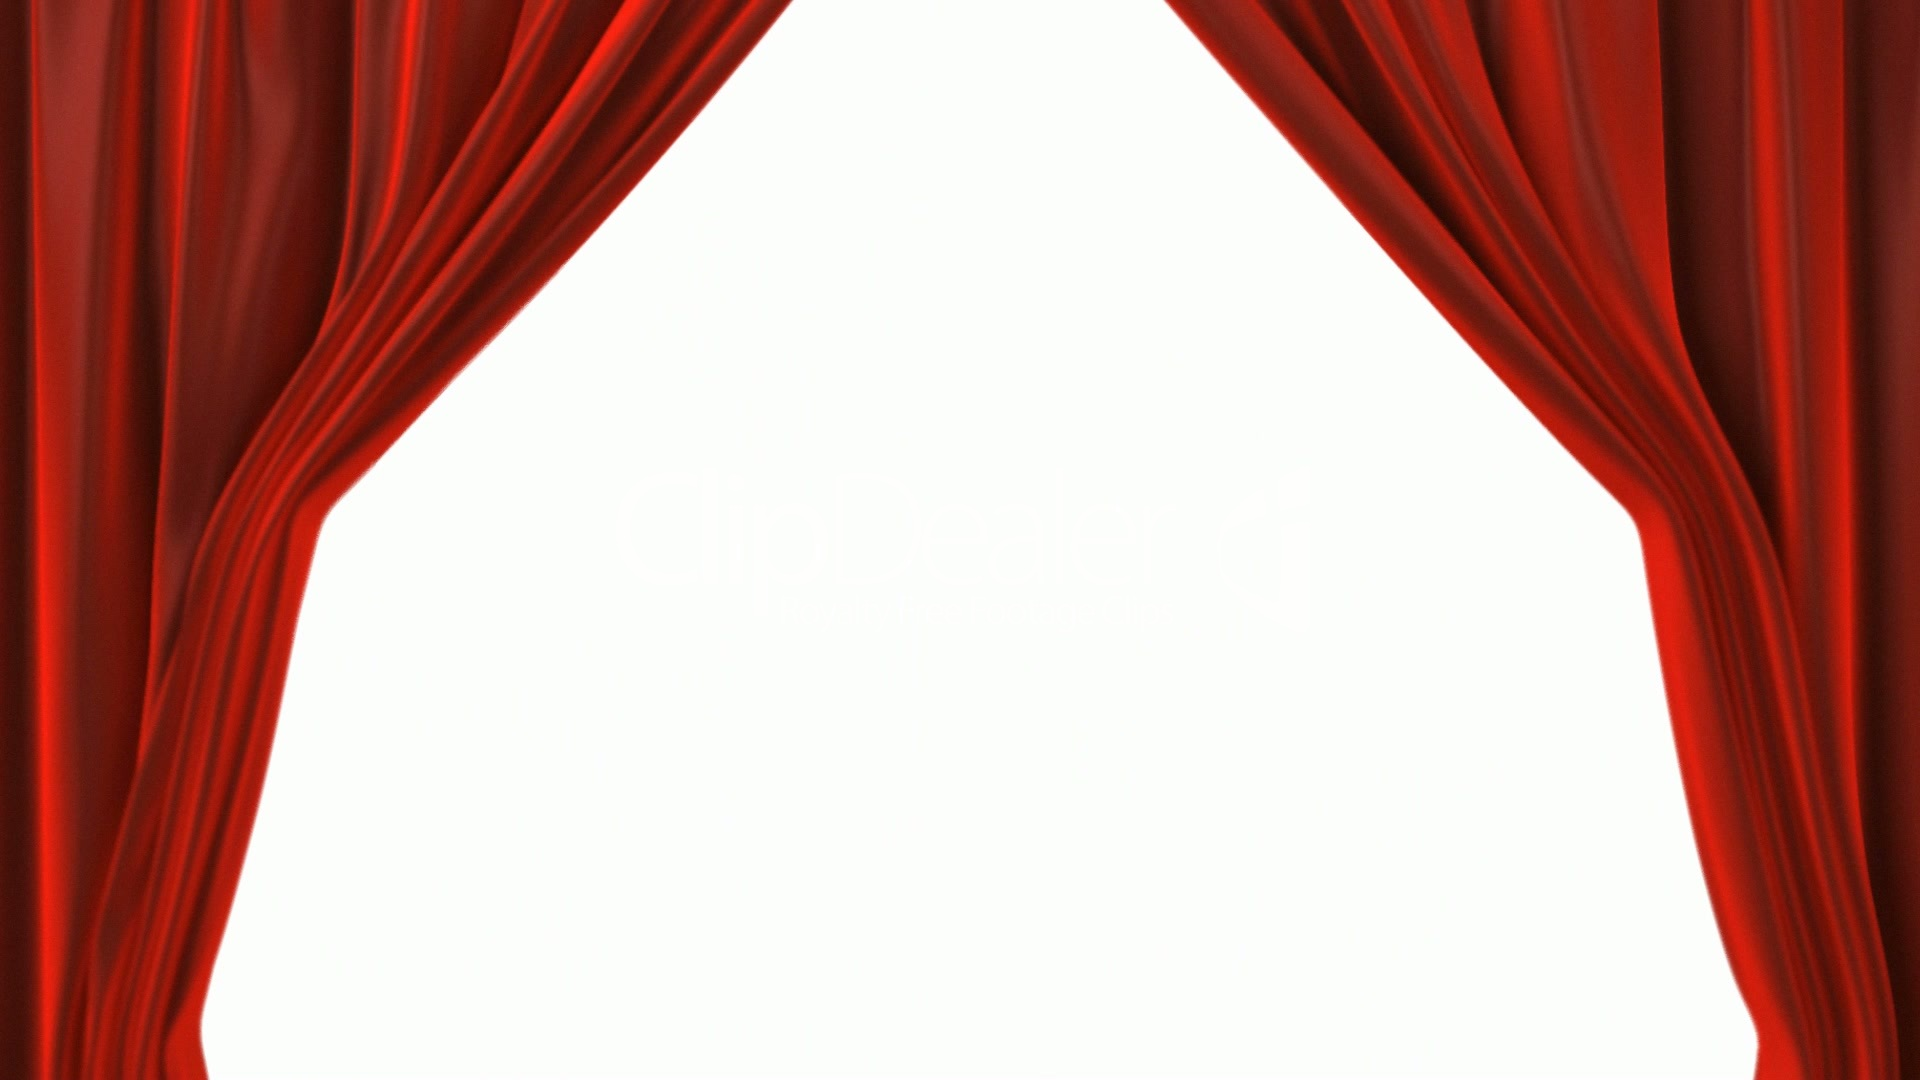 Opening Red Theatre Velvet Curtains The Alpha Channel Is